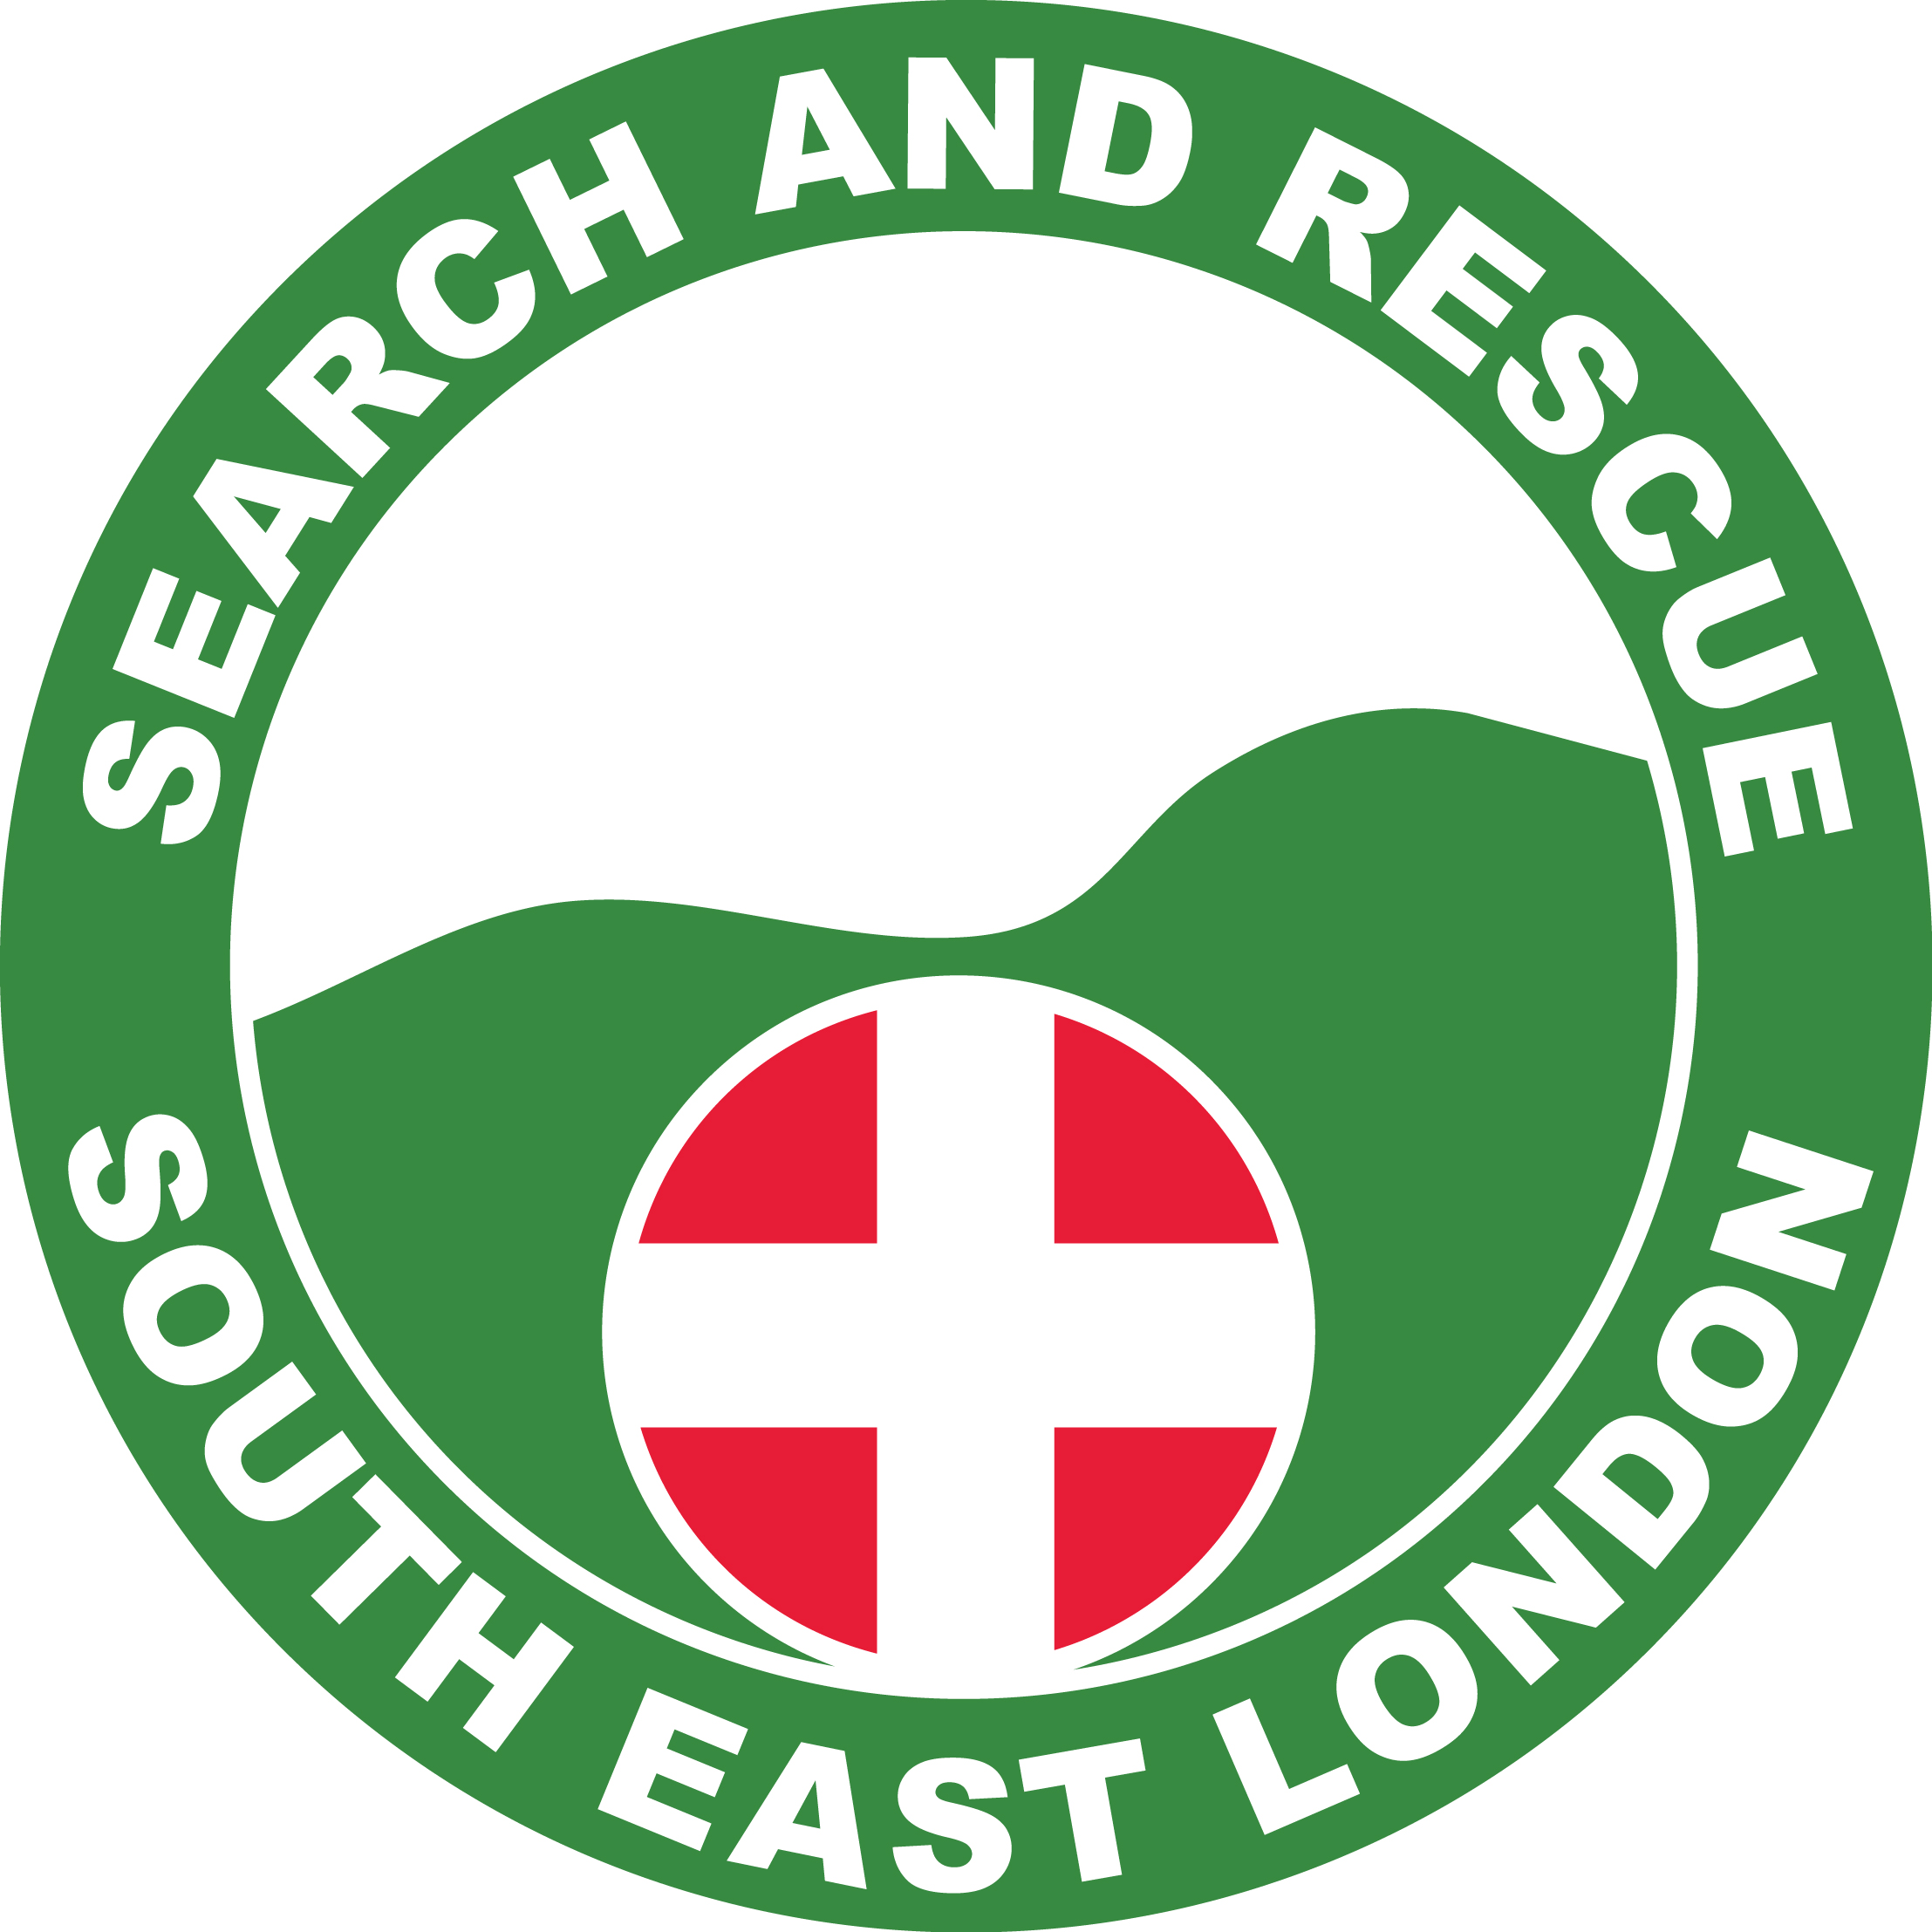 Search and rescue.jpg